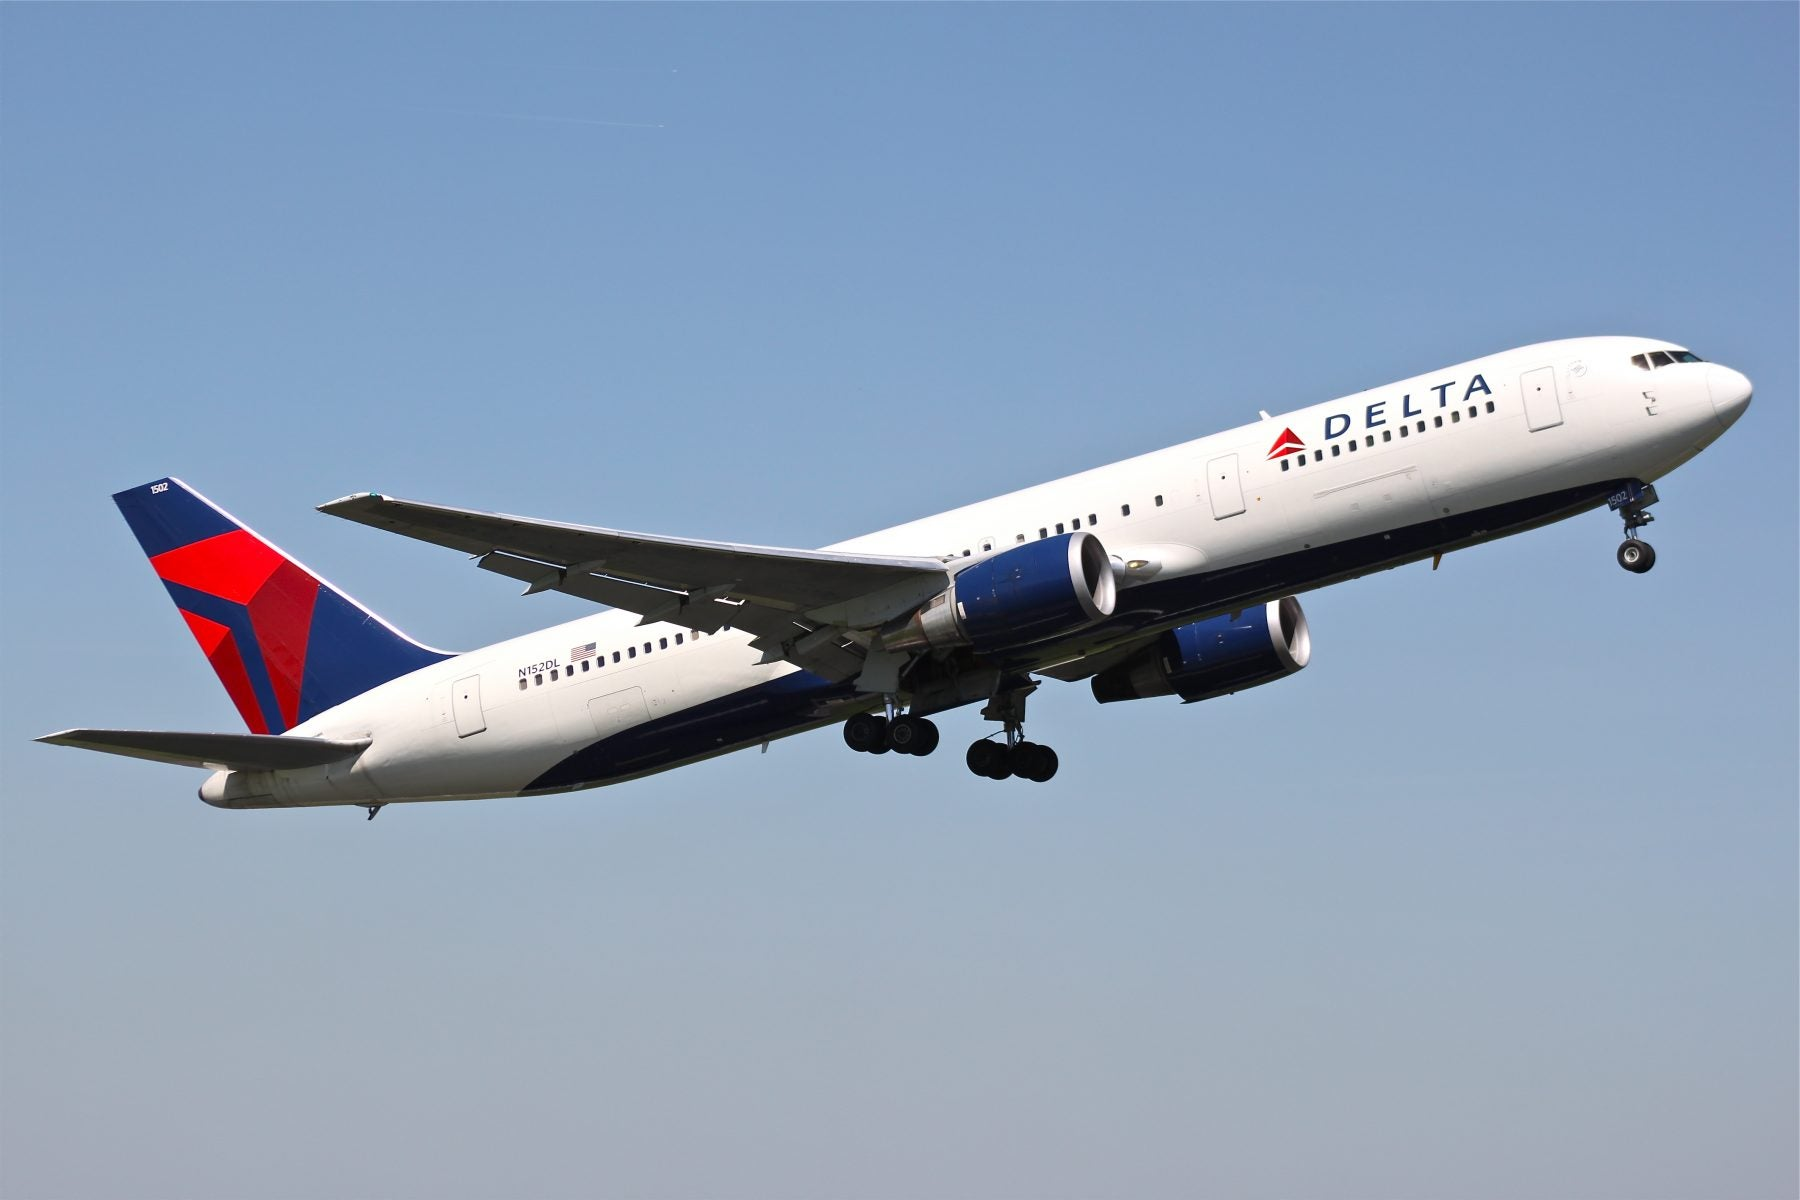 Domestic Delta award sale: Fly south from 8,000 Delta miles round-trip